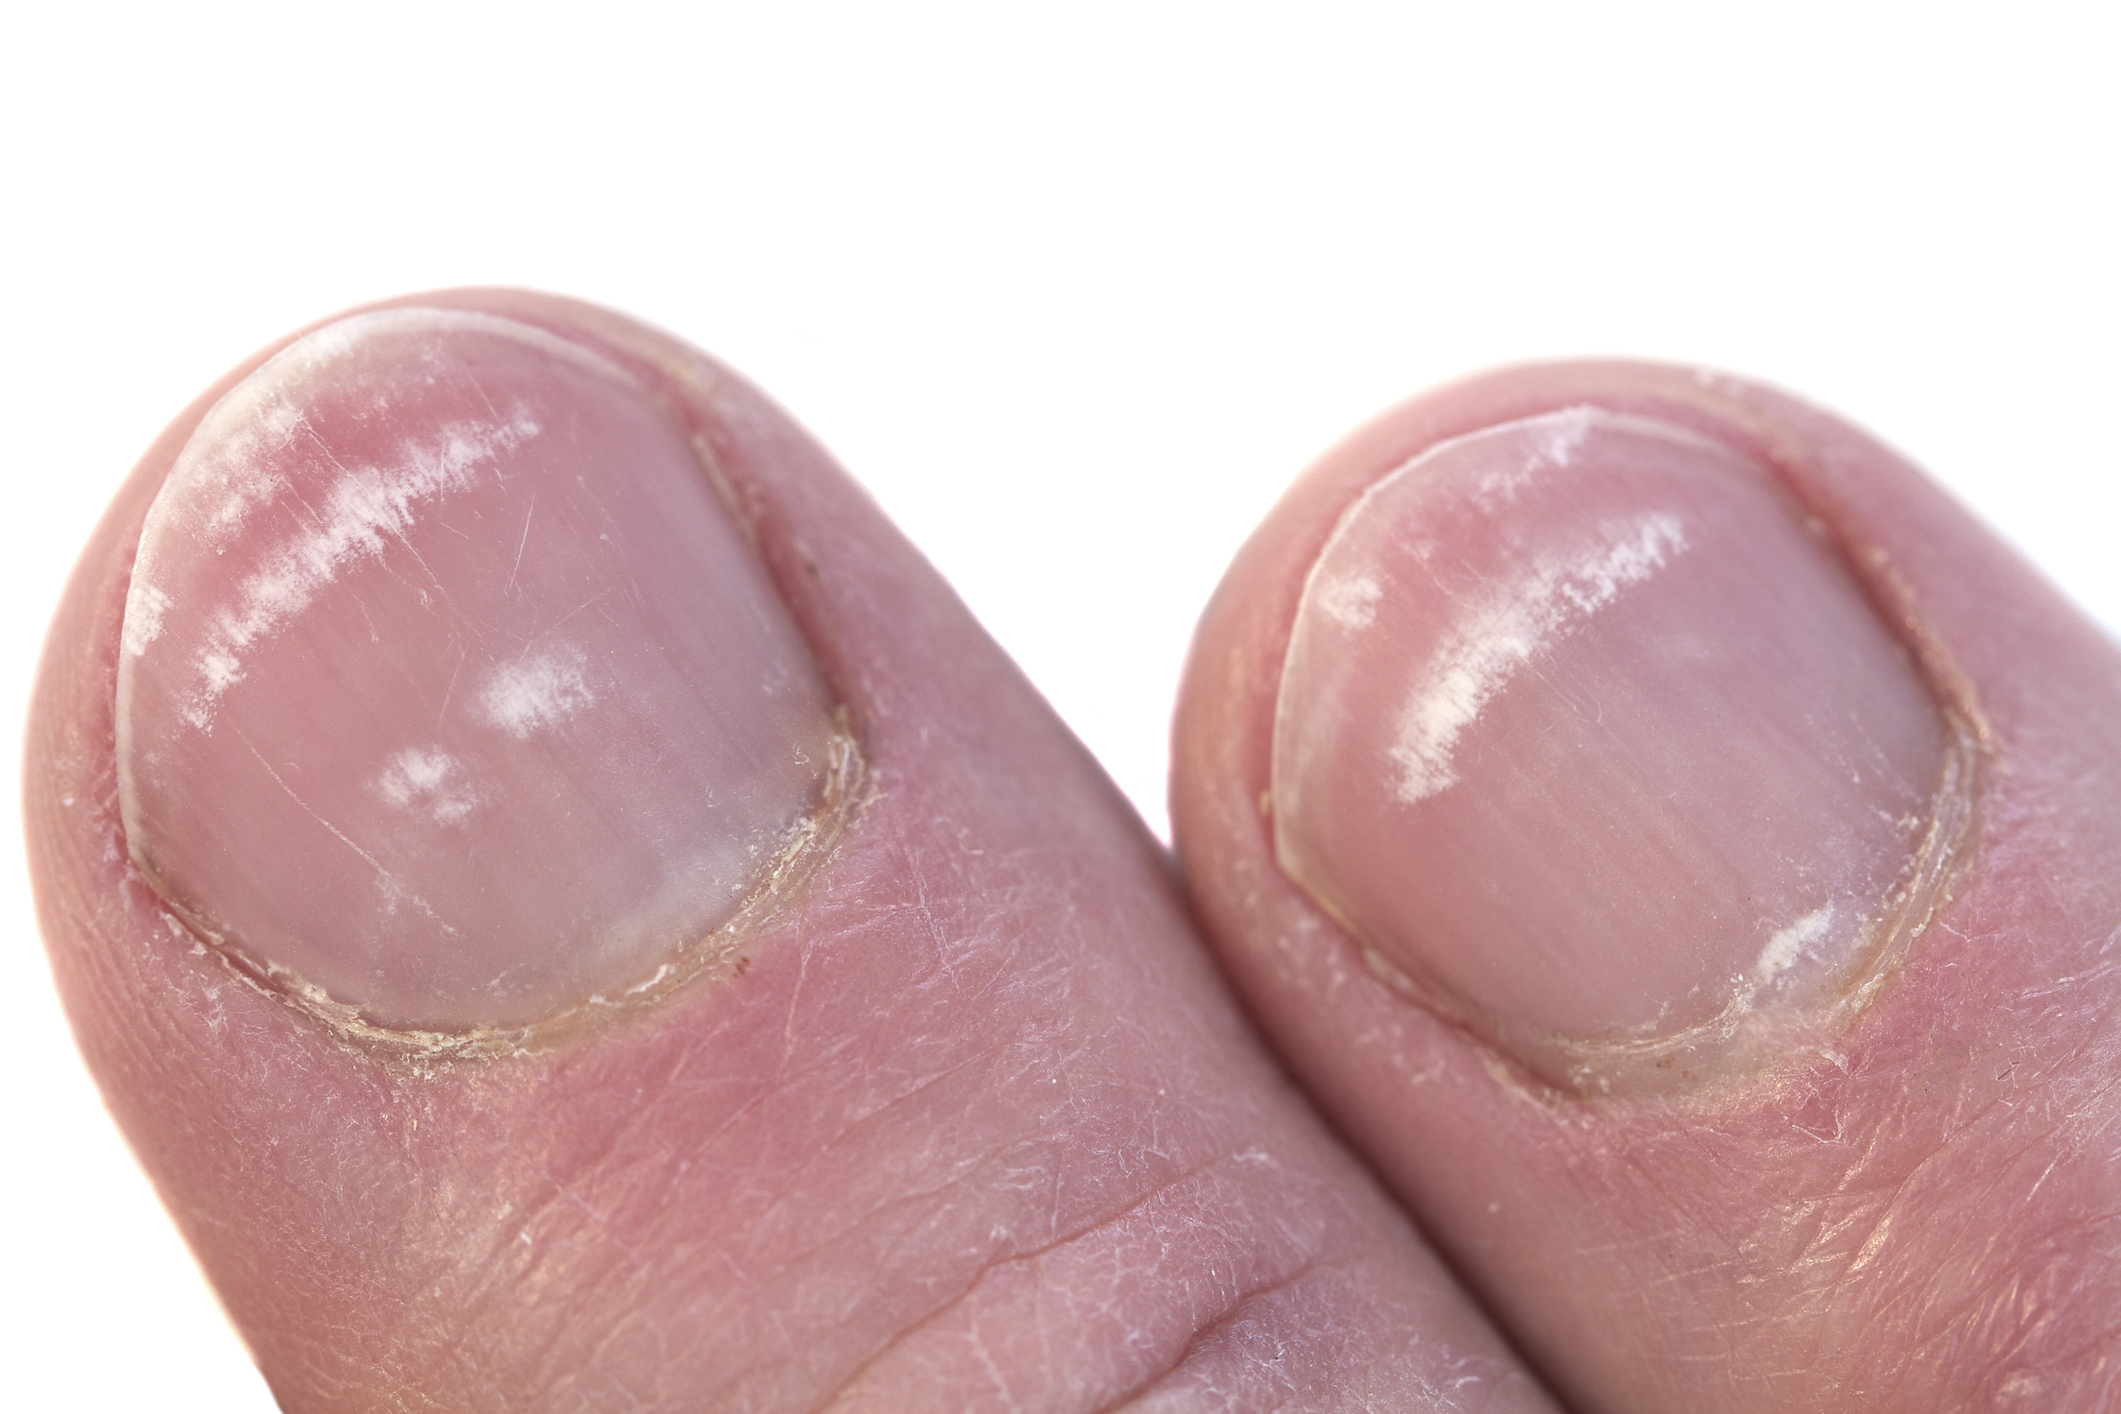 white spots on nails leukonychia